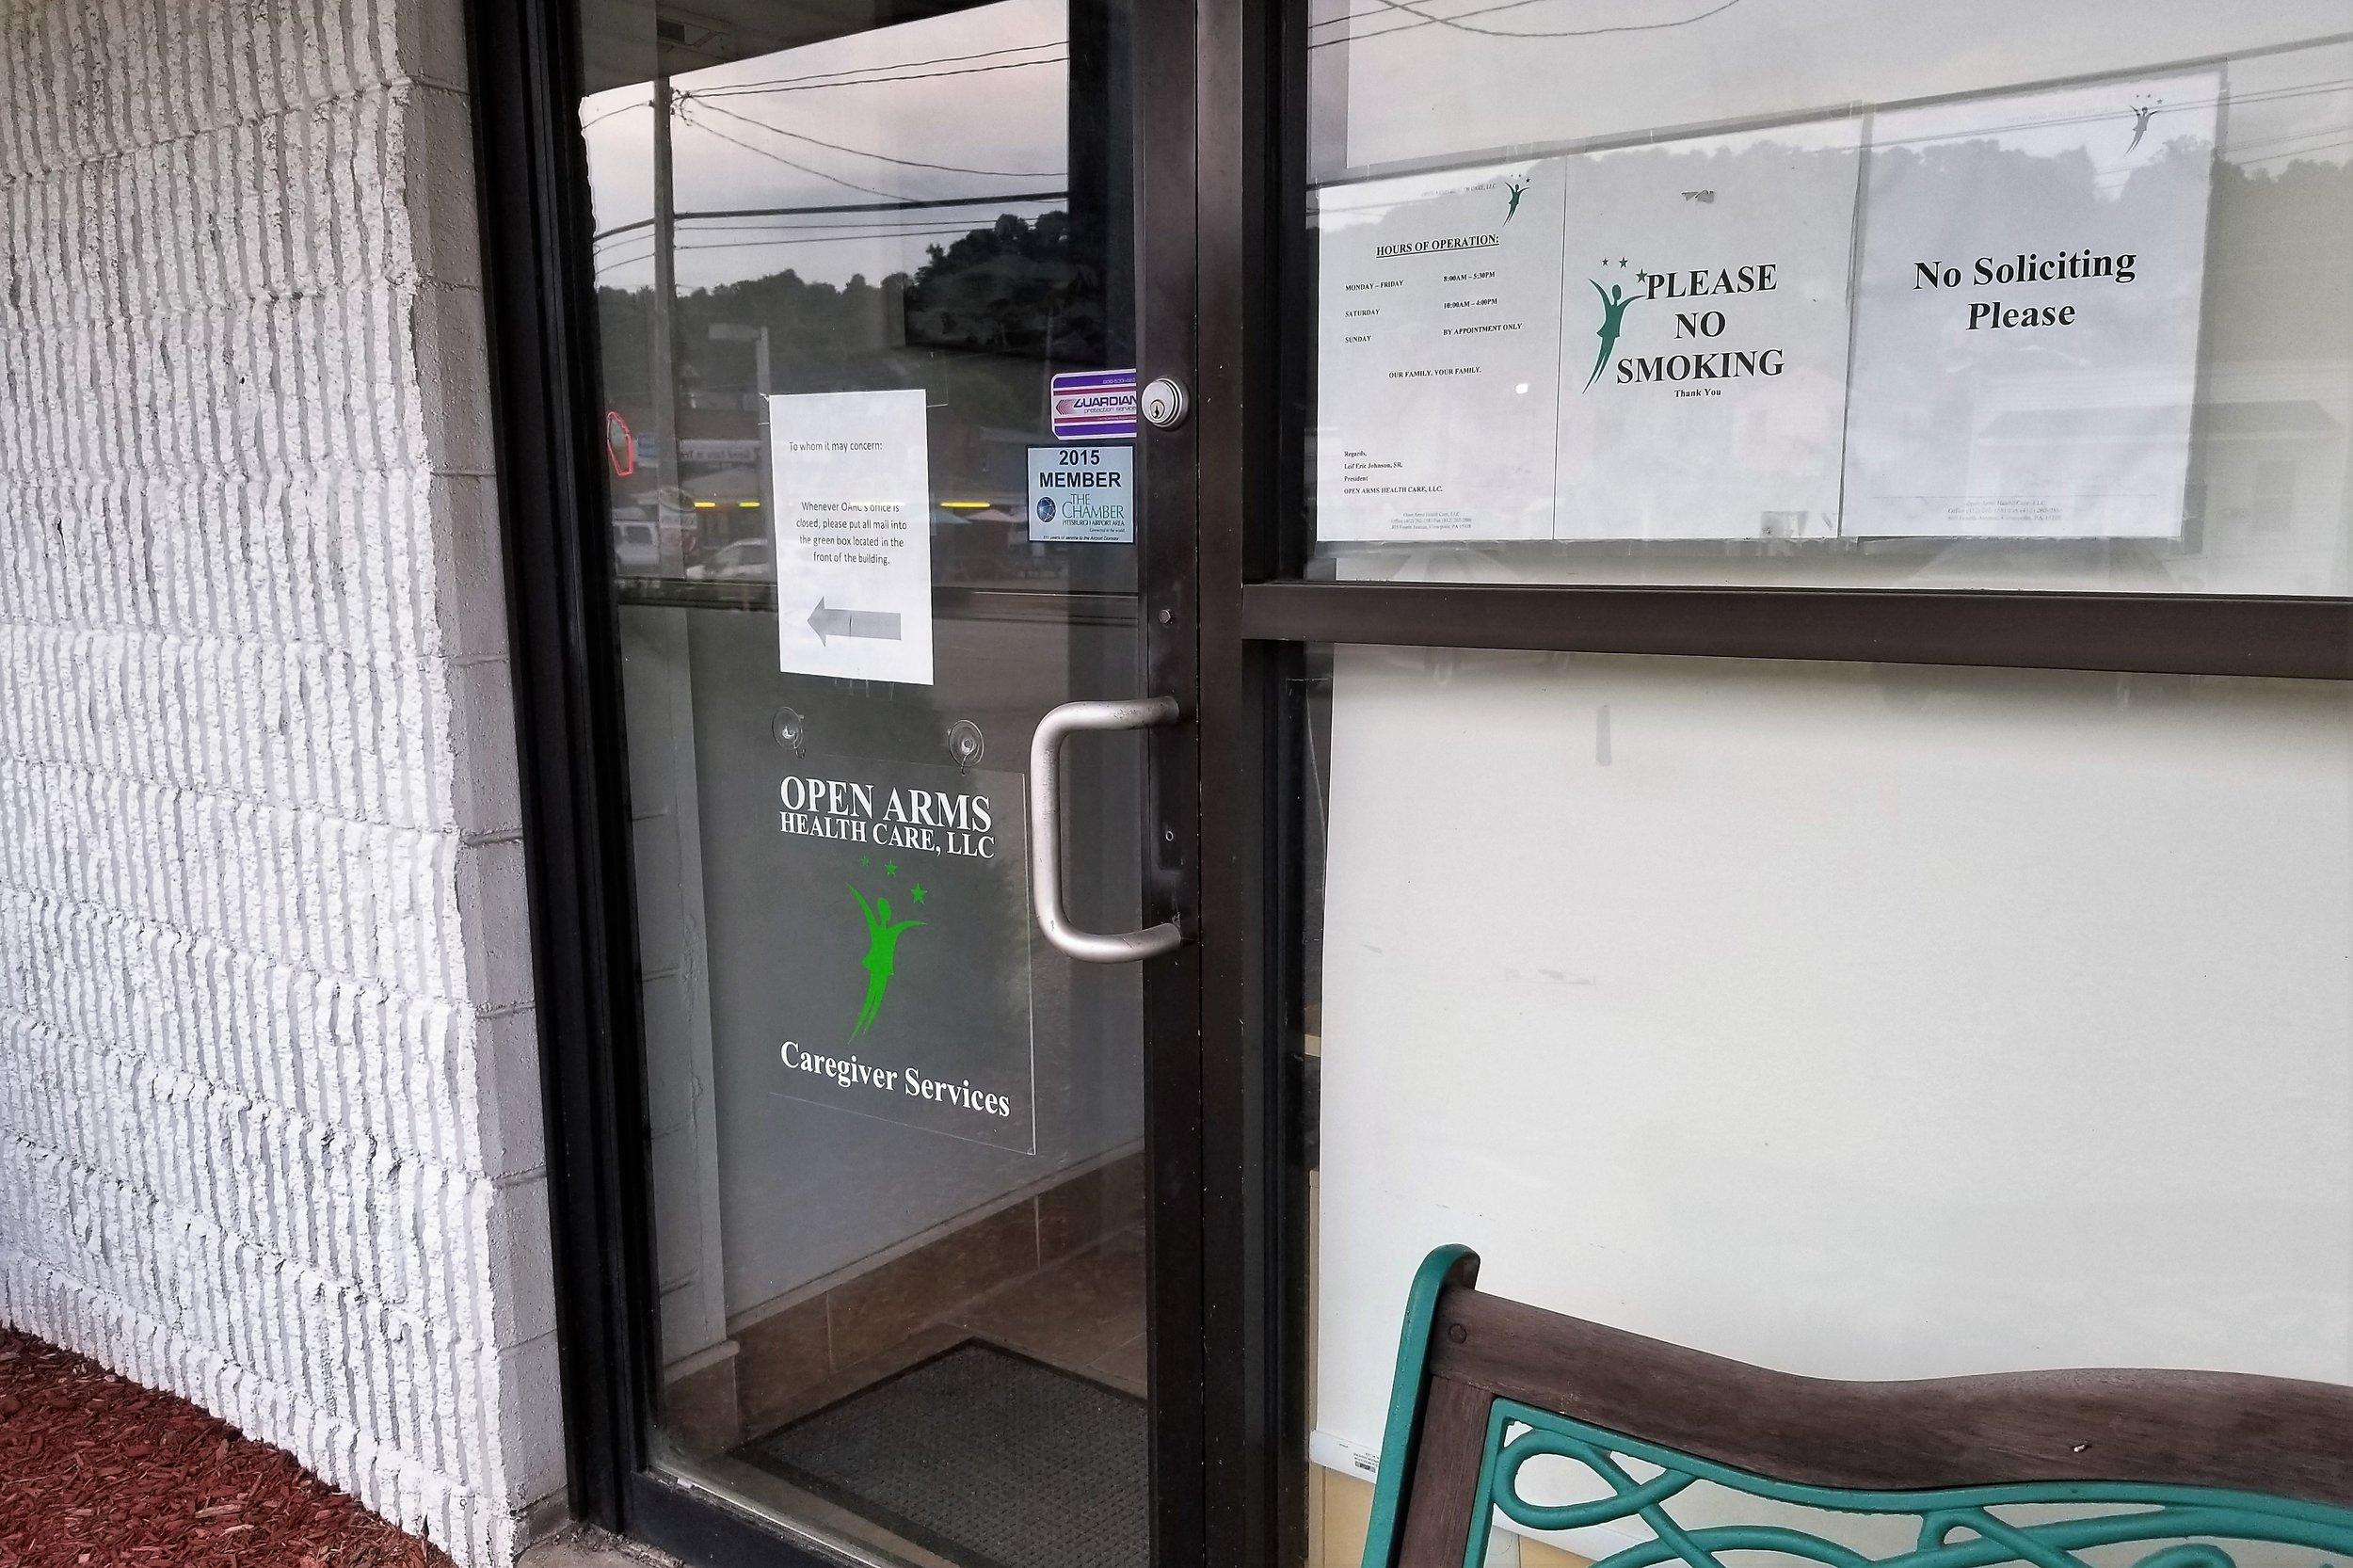 Open Arms Health Care - 805 4th Ave,(412) 262-1580